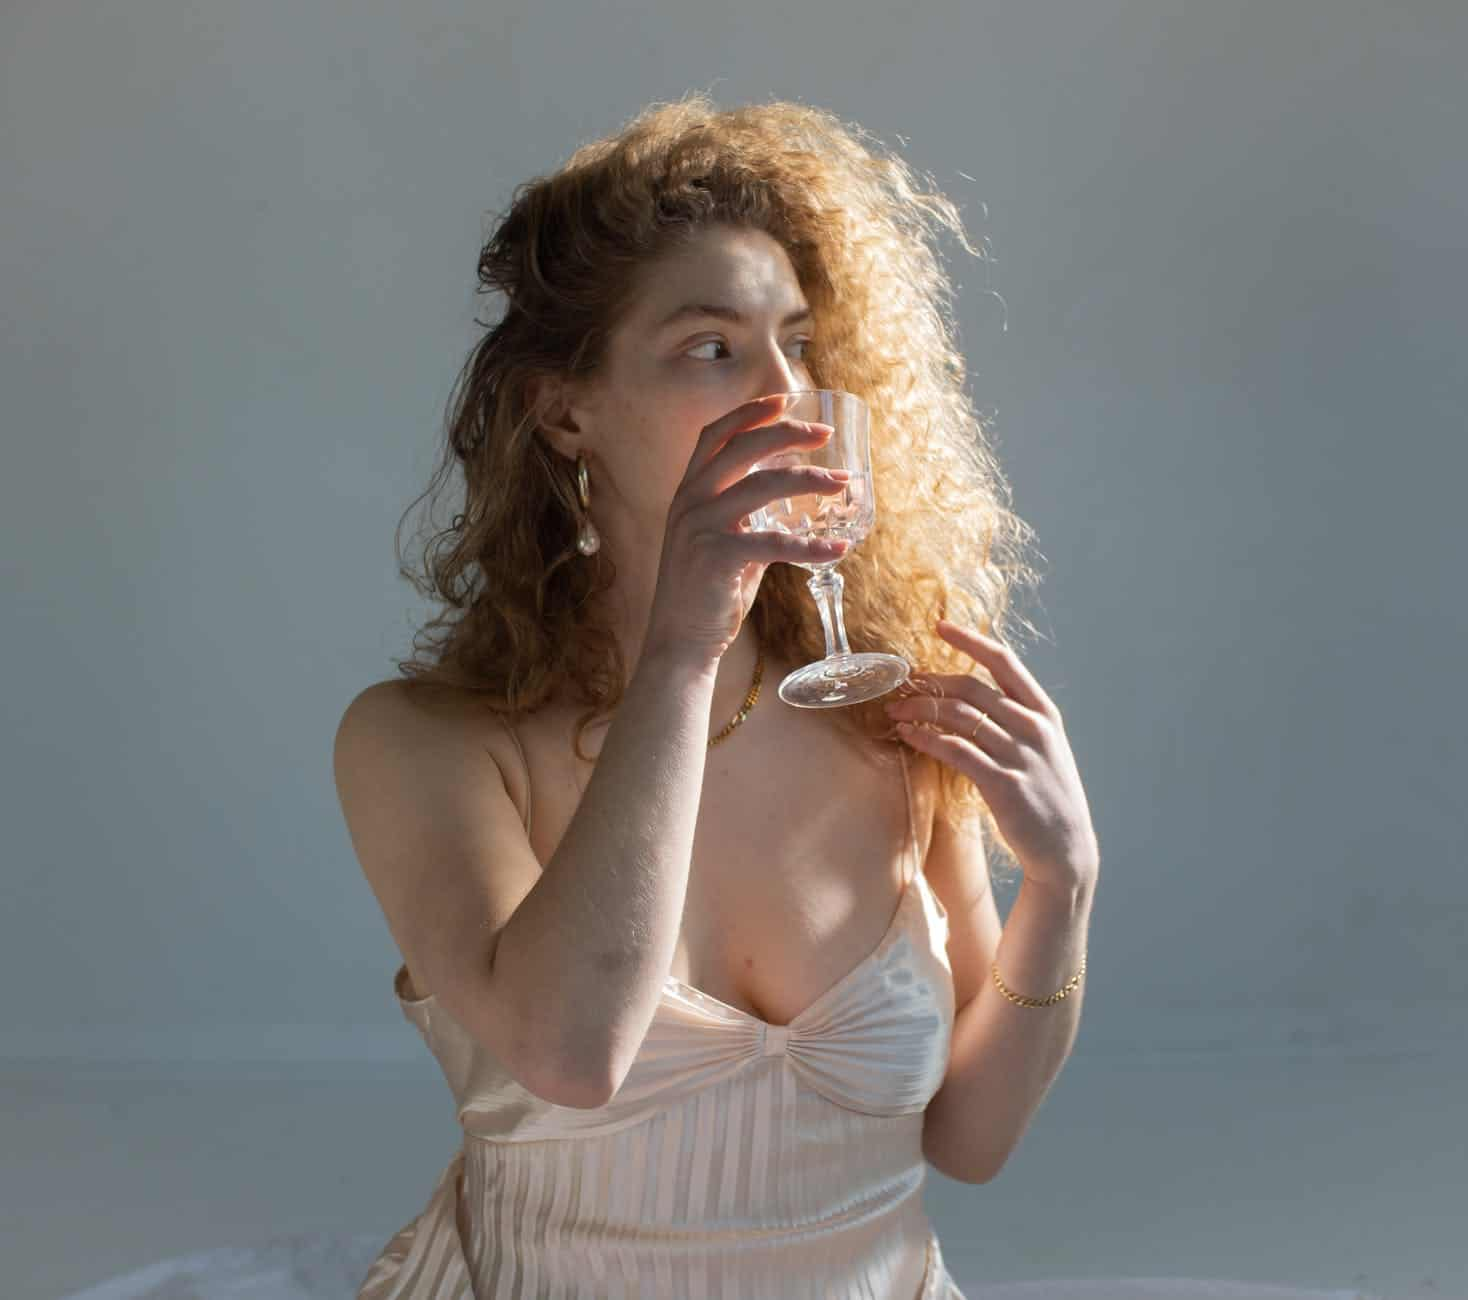 woman with tousled curly hair drinking water from wineglass